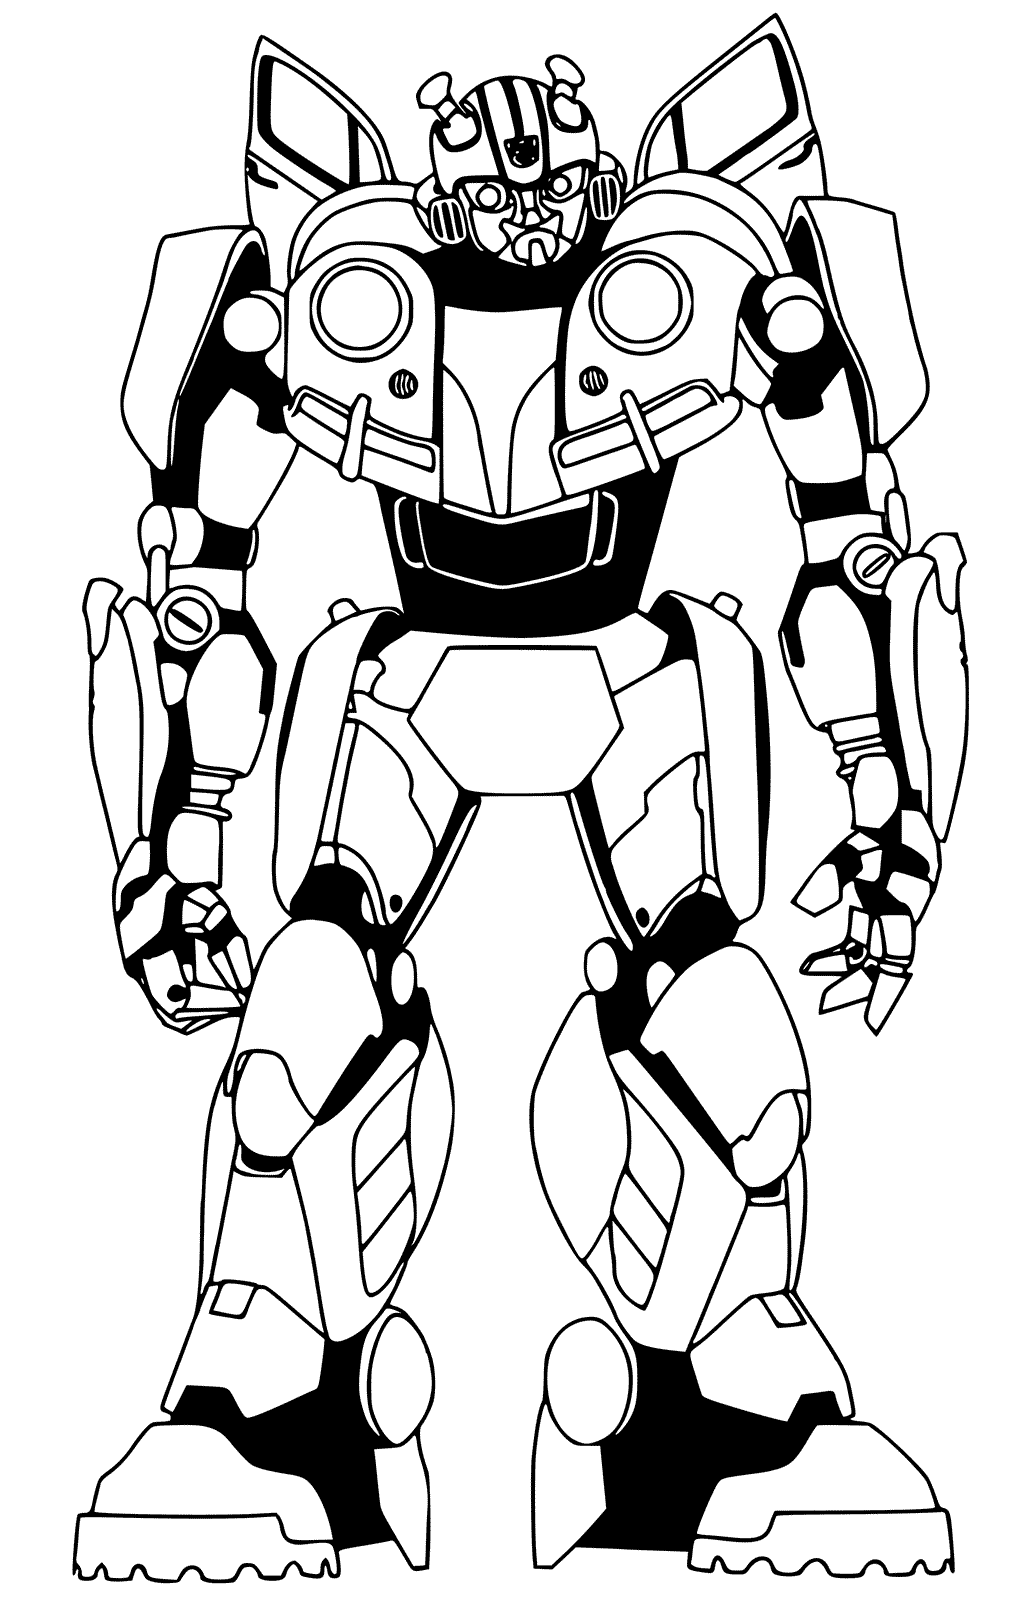 transformers movie coloring pages free printable transformers coloring pages for kids pages coloring movie transformers